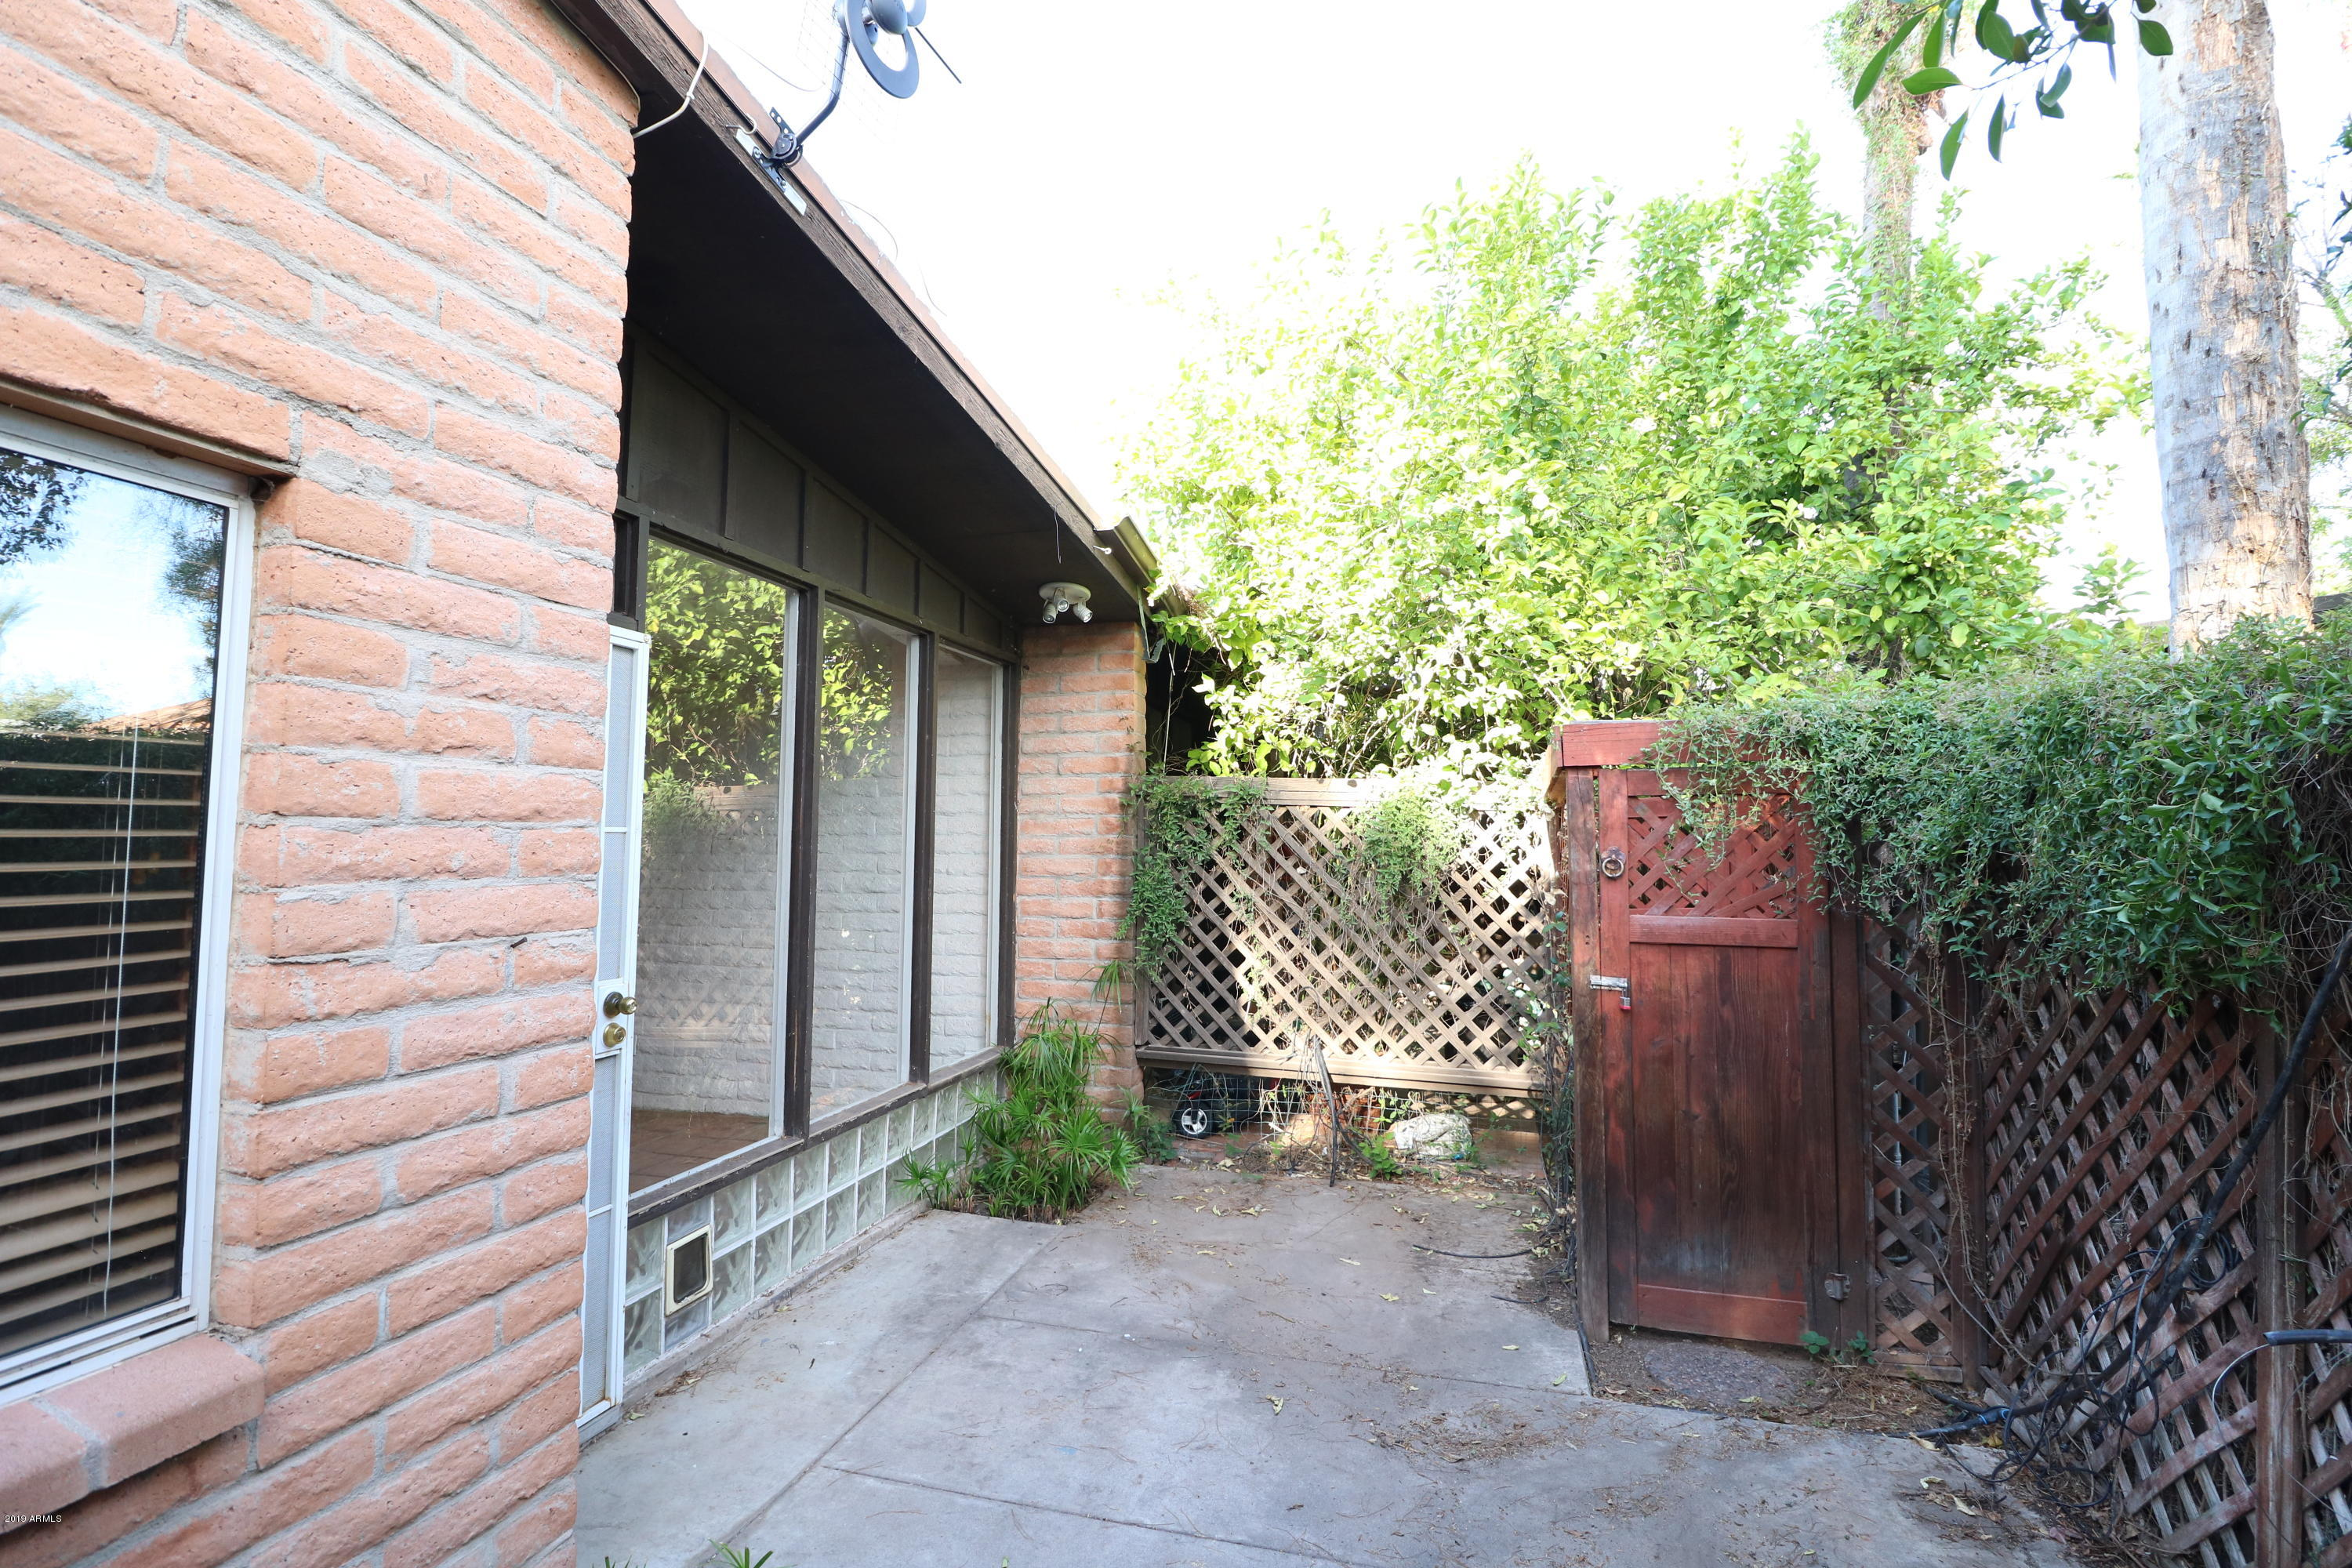 MLS 5962264 3056 N 32ND Street Unit 339, Phoenix, AZ 85018 Phoenix AZ REO Bank Owned Foreclosure